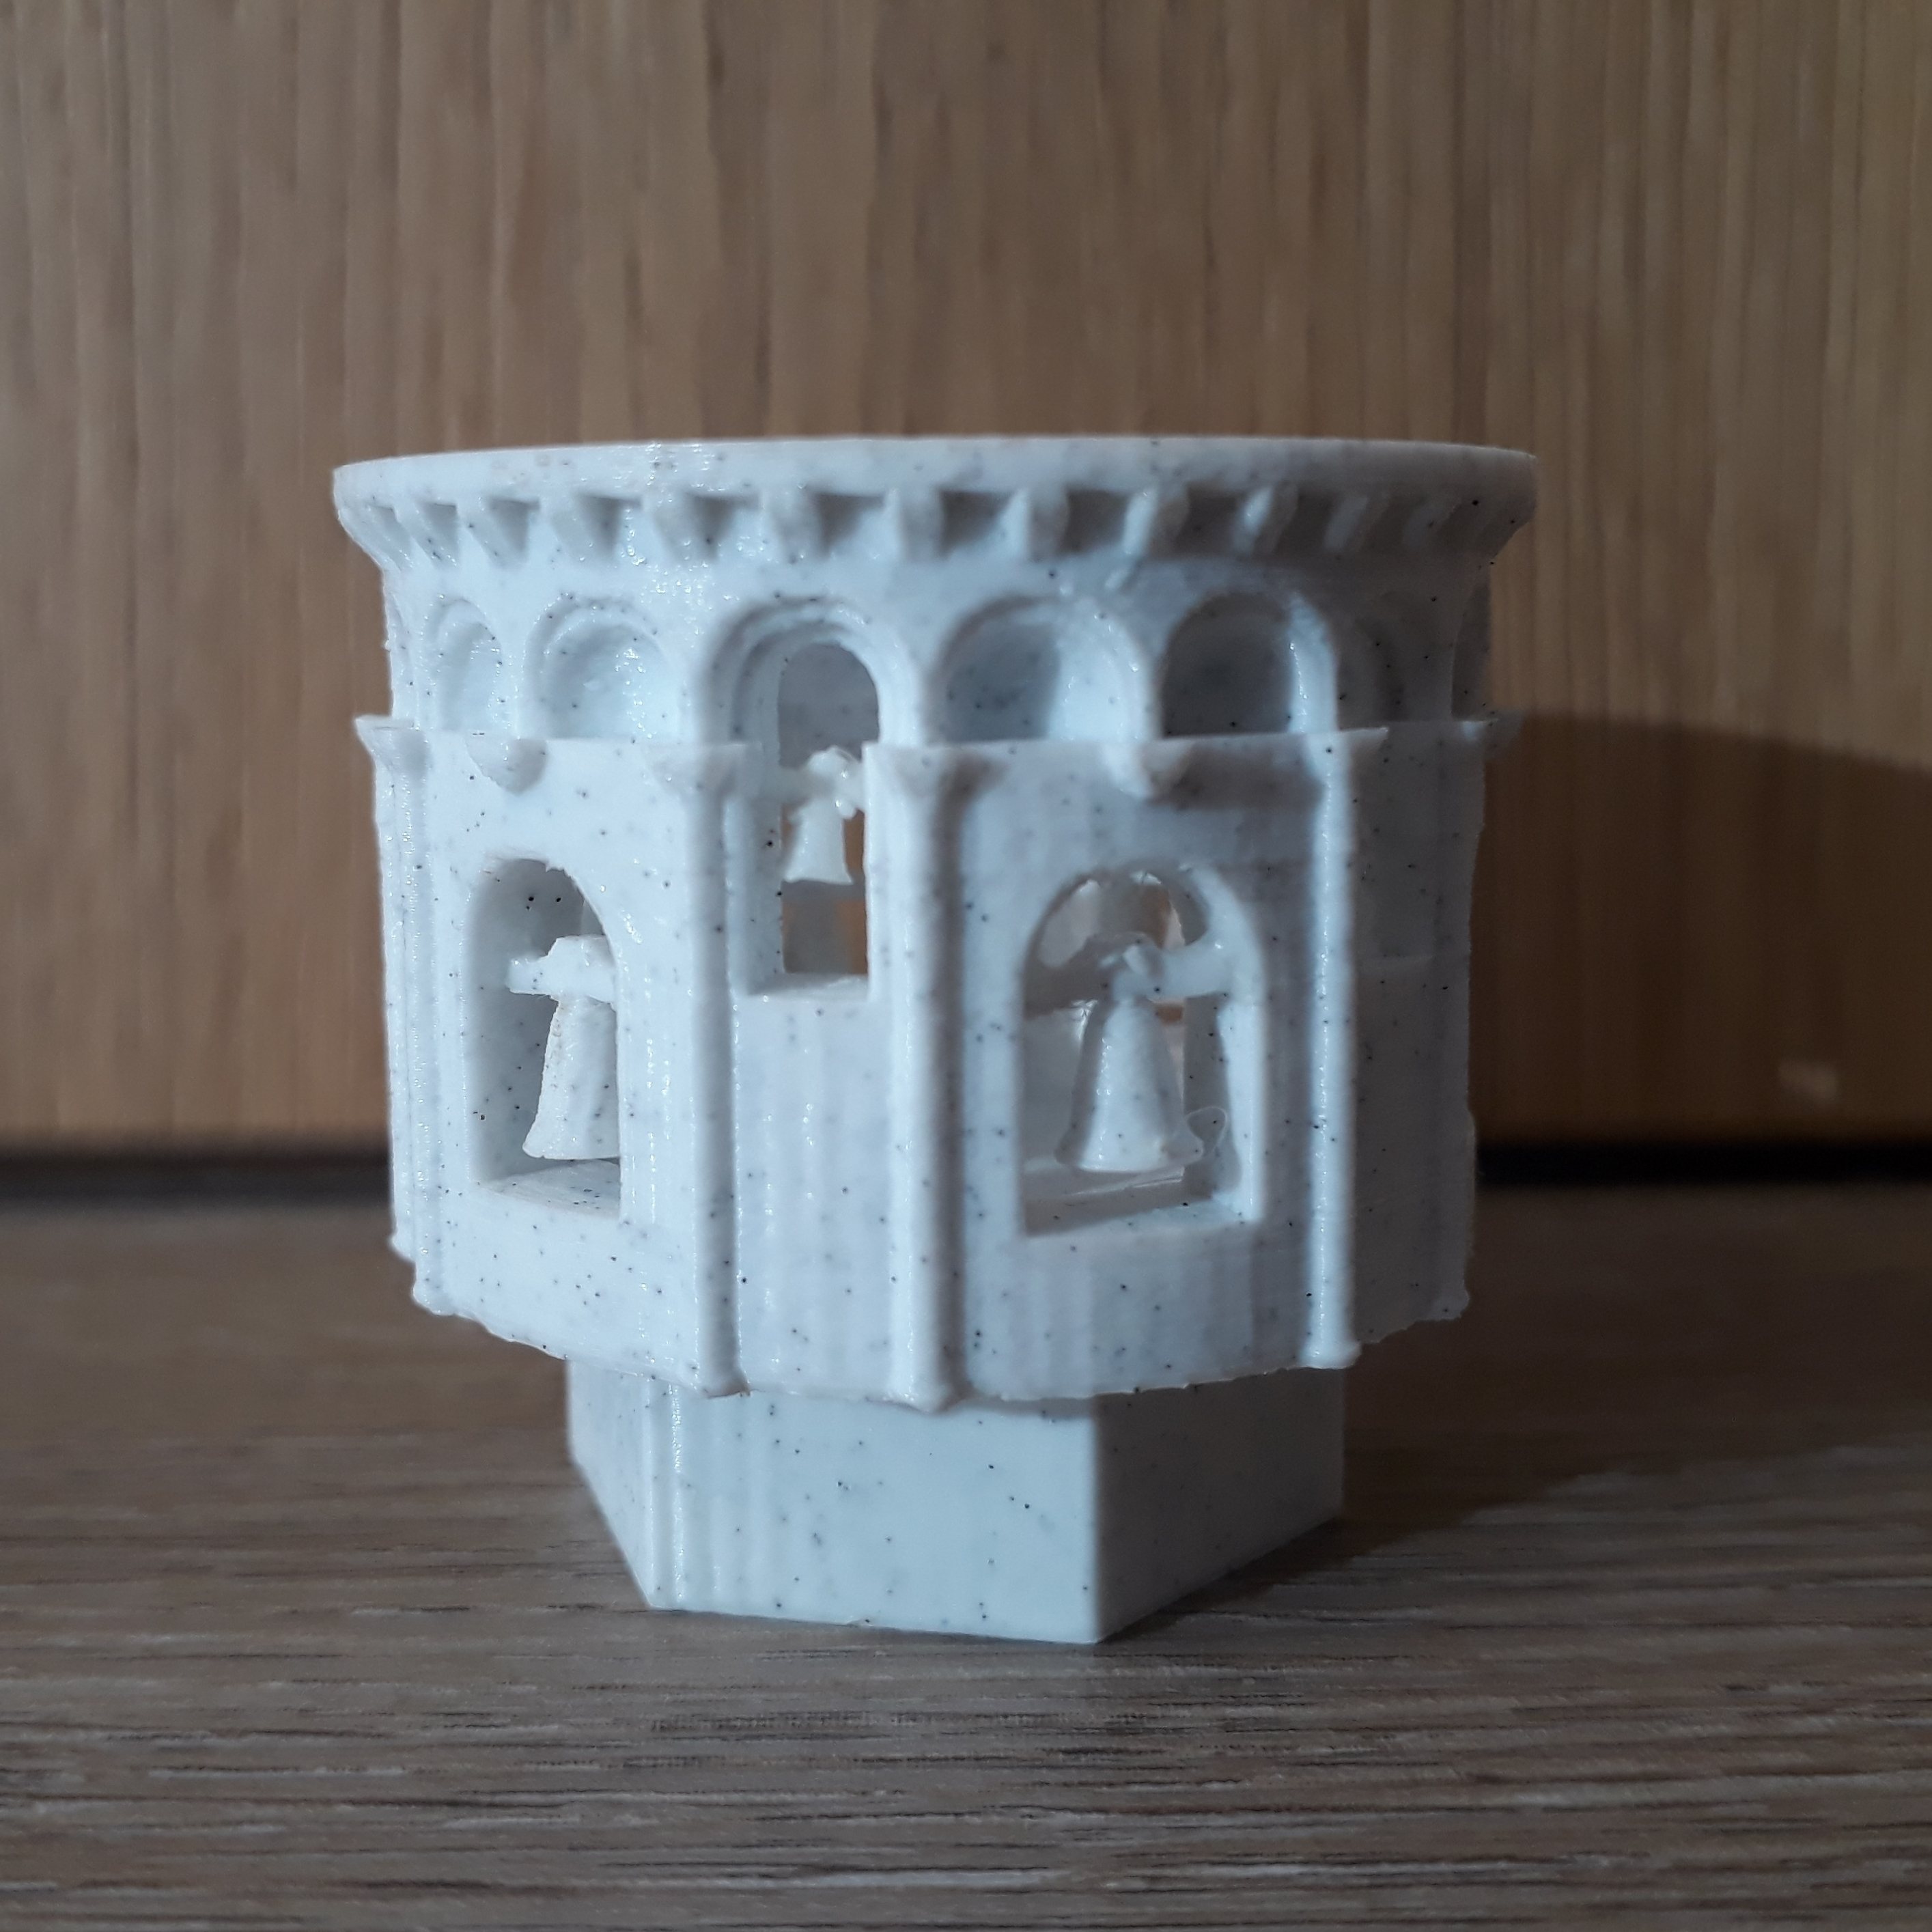 20200212_104121.jpg Download STL file Leaning Tower of Pisa • 3D printing object, Chrisibub